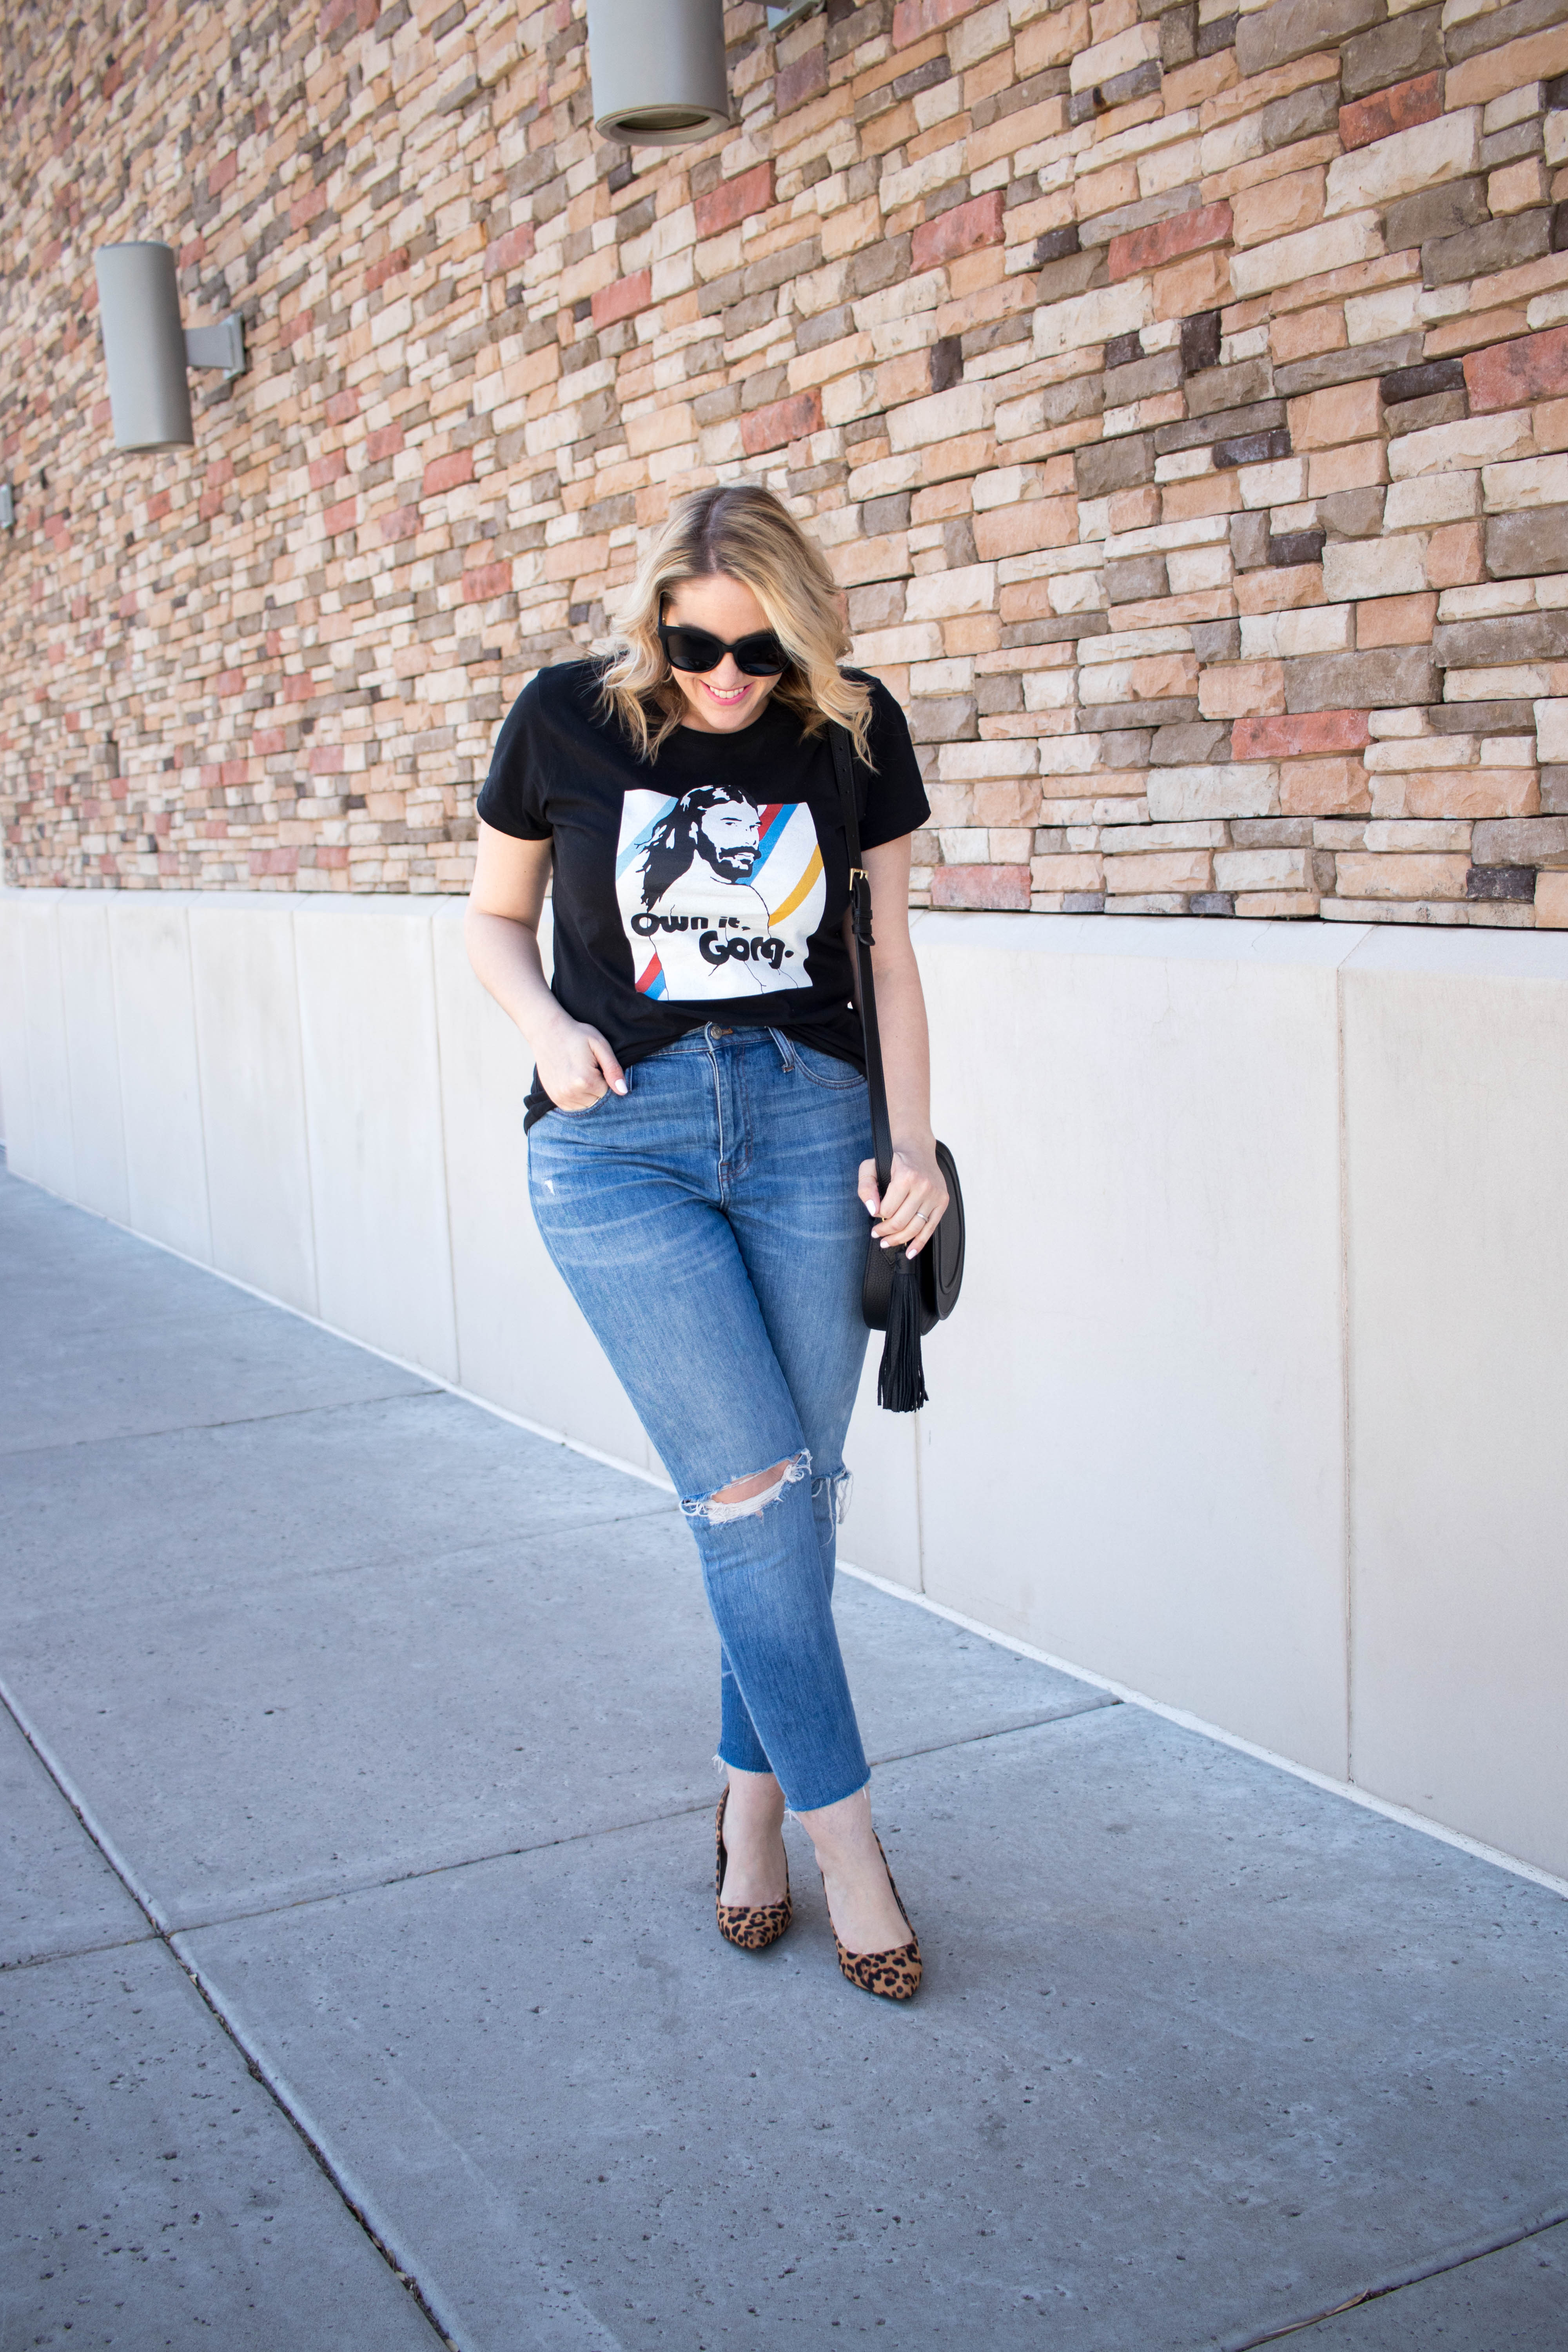 how to style a graphic tee #styleblogger #streetstyle #graphictee